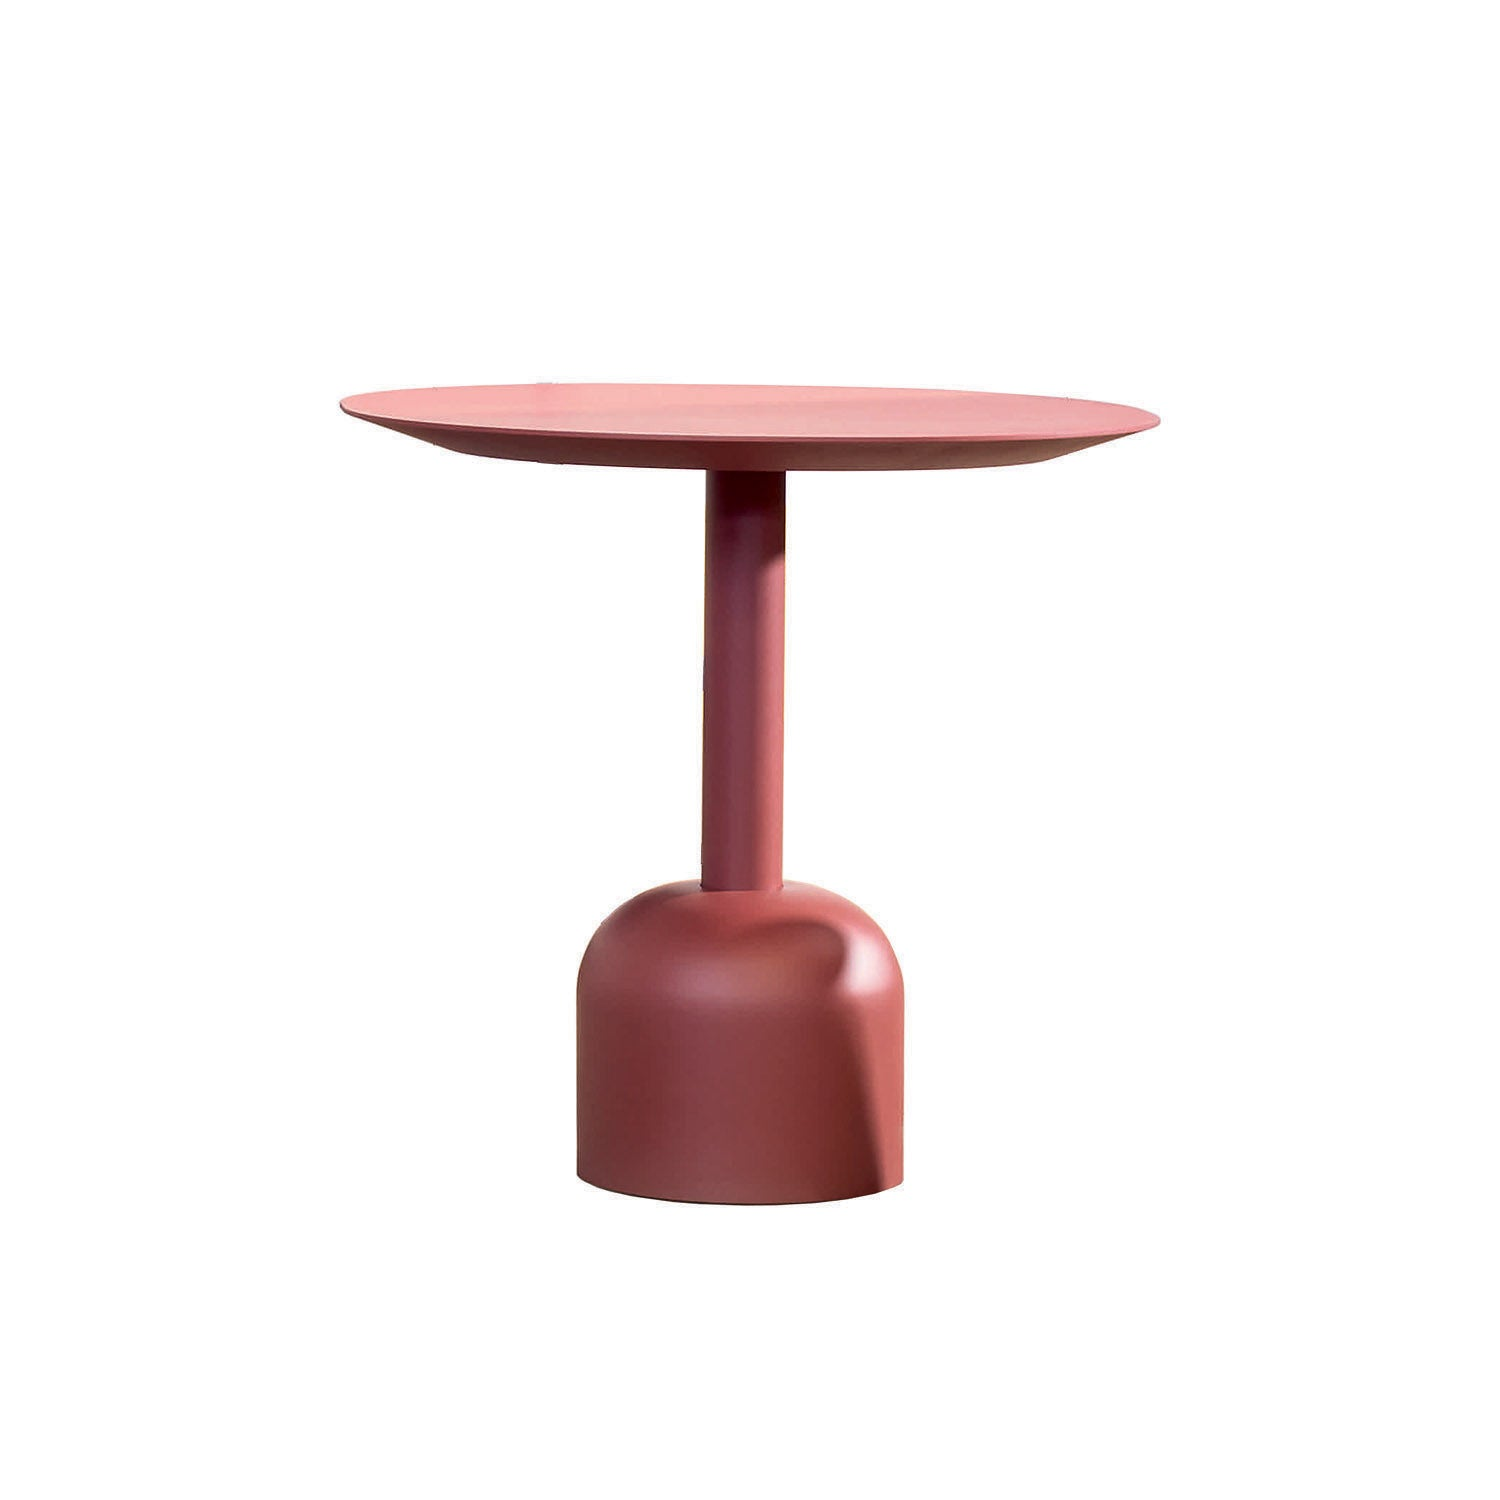 Illo Small Round Dining Table